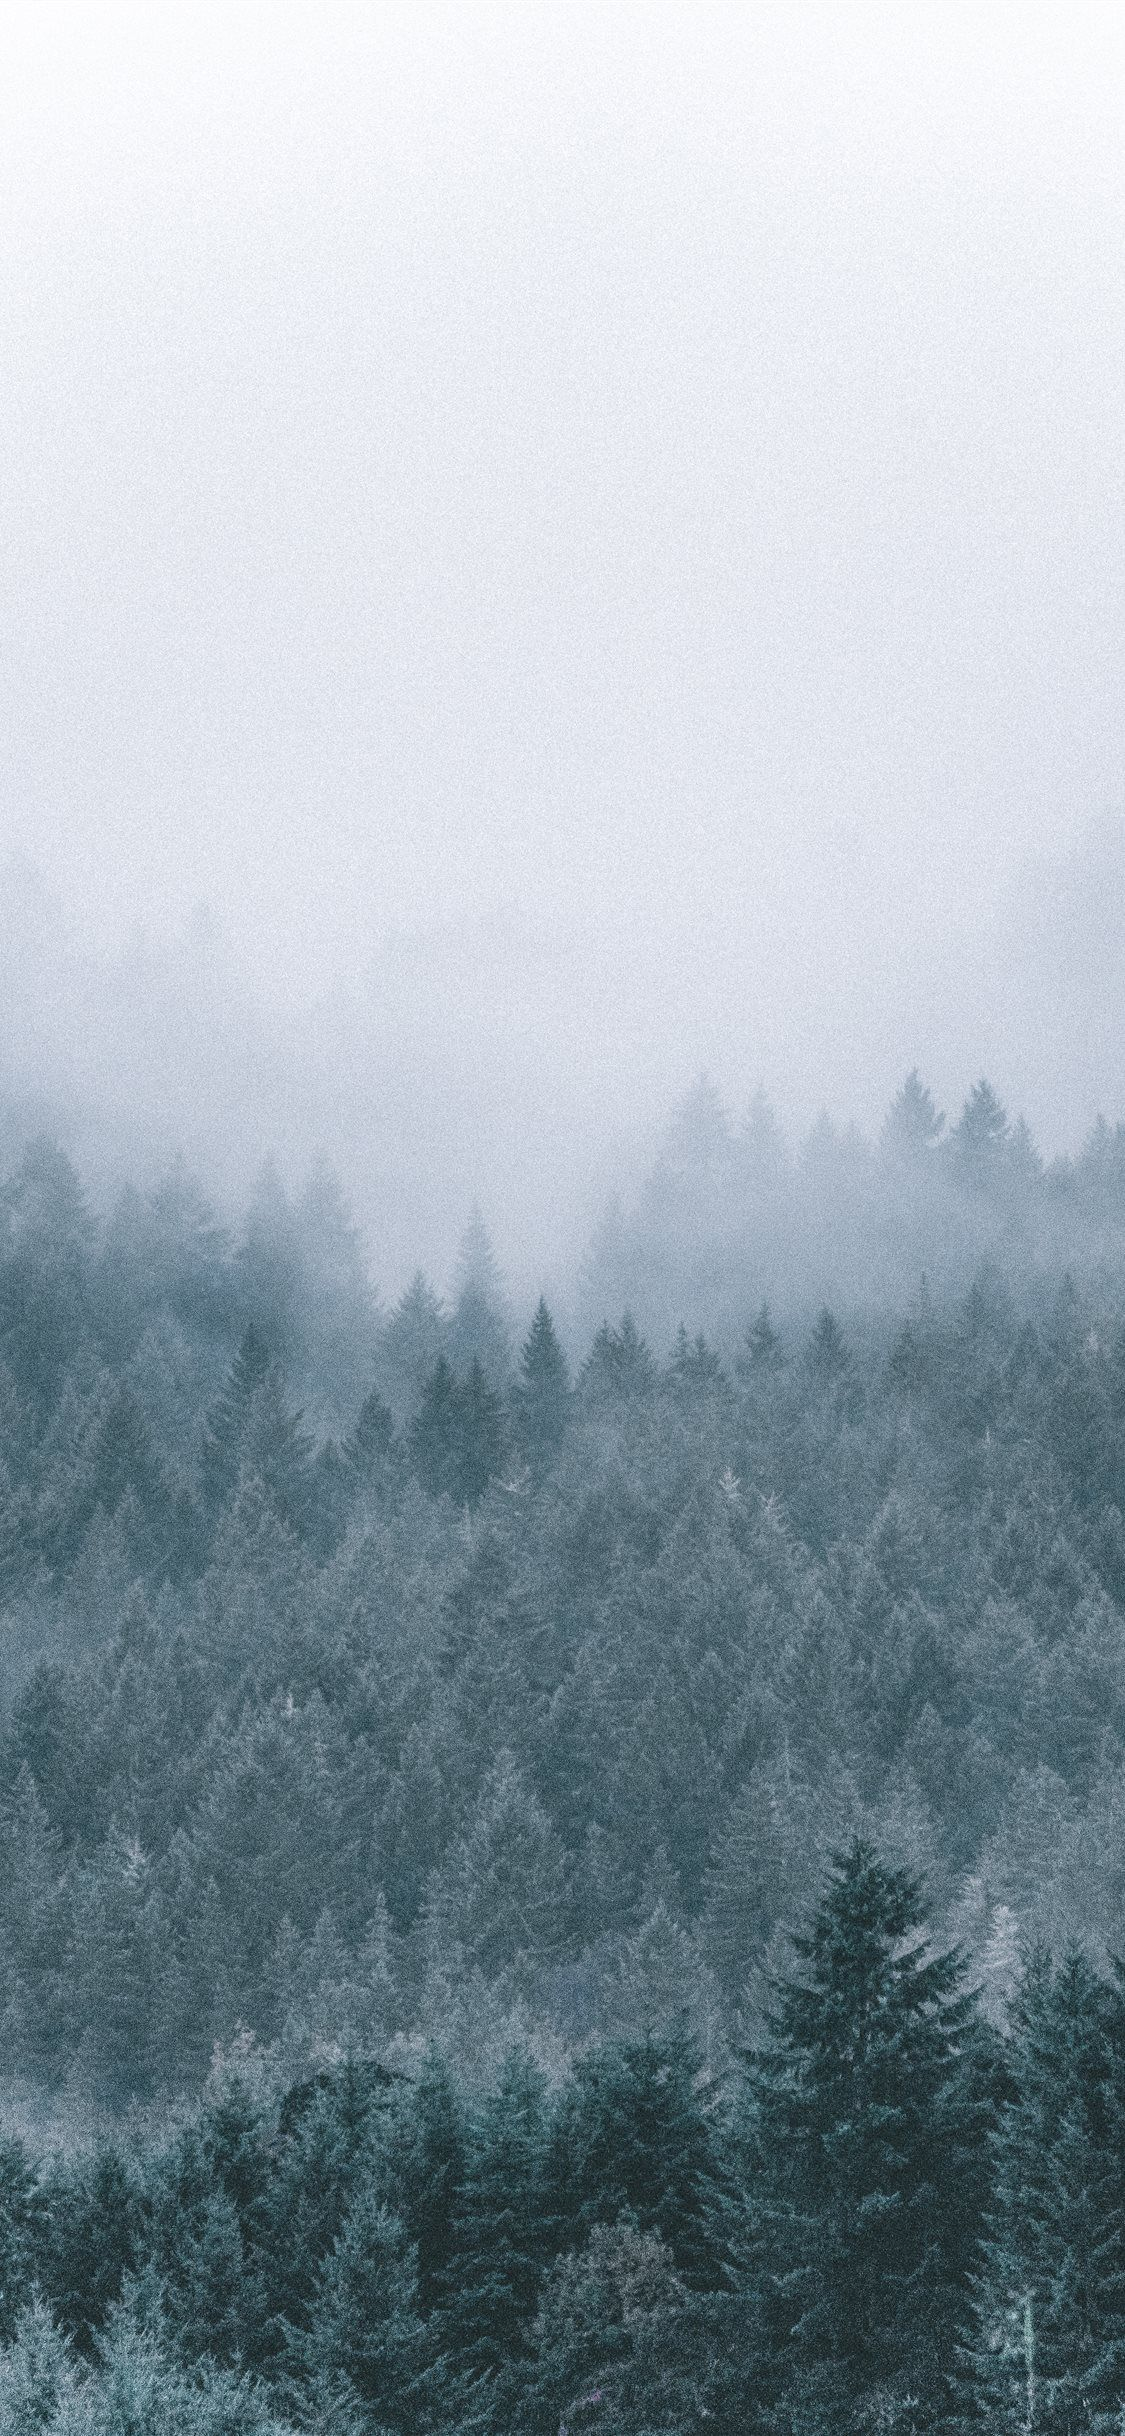 Free Download The Foggy Icy Green Pine Trees Scenery Wallpaper Beaty Your Iphone Tree Snow Scenery Wallpaper Tree Scenery Wallpaper Snow Wallpaper Iphone